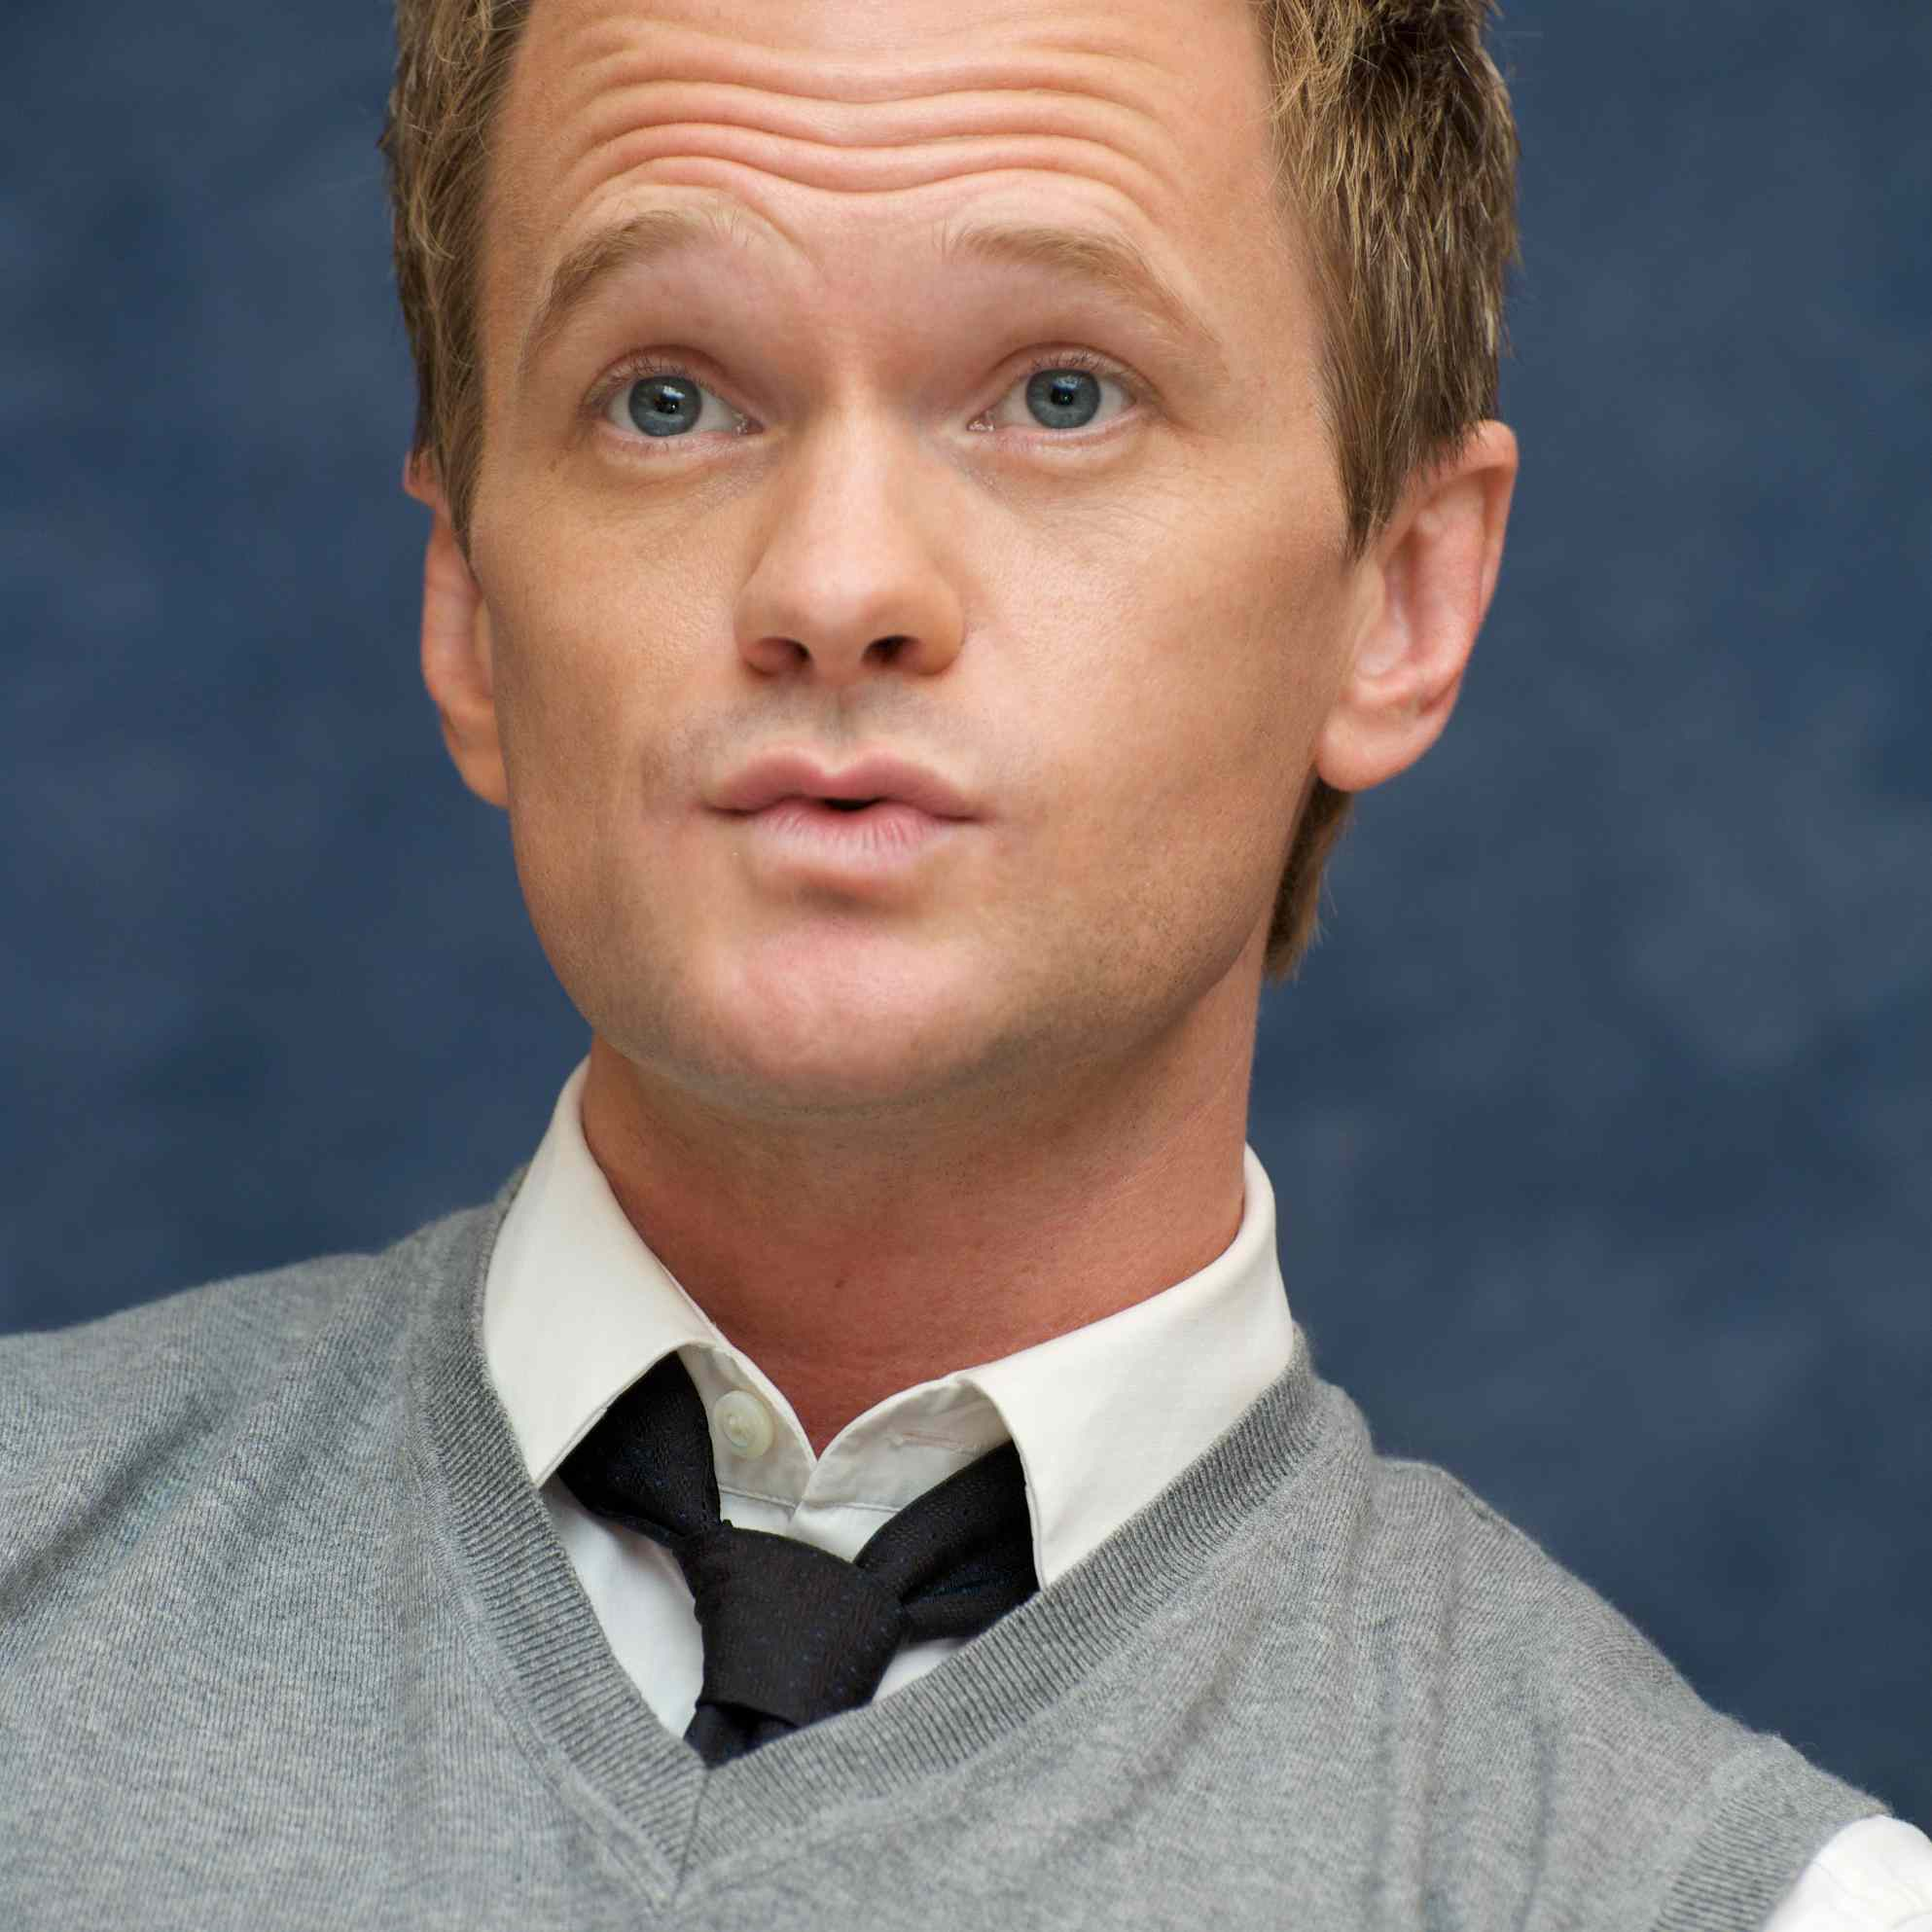 How I Met Your Mother: Best Barney Stinson Quotations